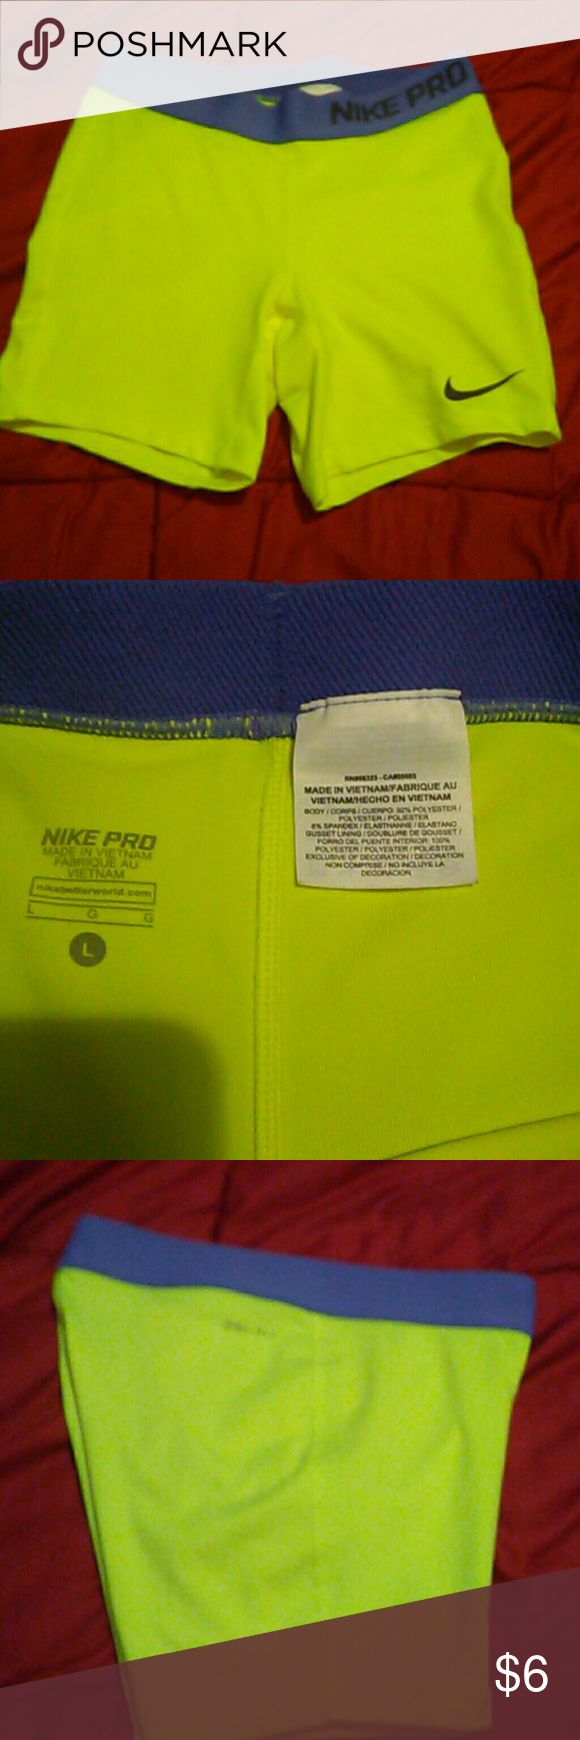 NWOT/Nike pro Shorts Girls L / Darling Neon yellow dry-fit shorts. 92% polyester 8% spandex. Inventory # 10101 Nike Bottoms Shorts